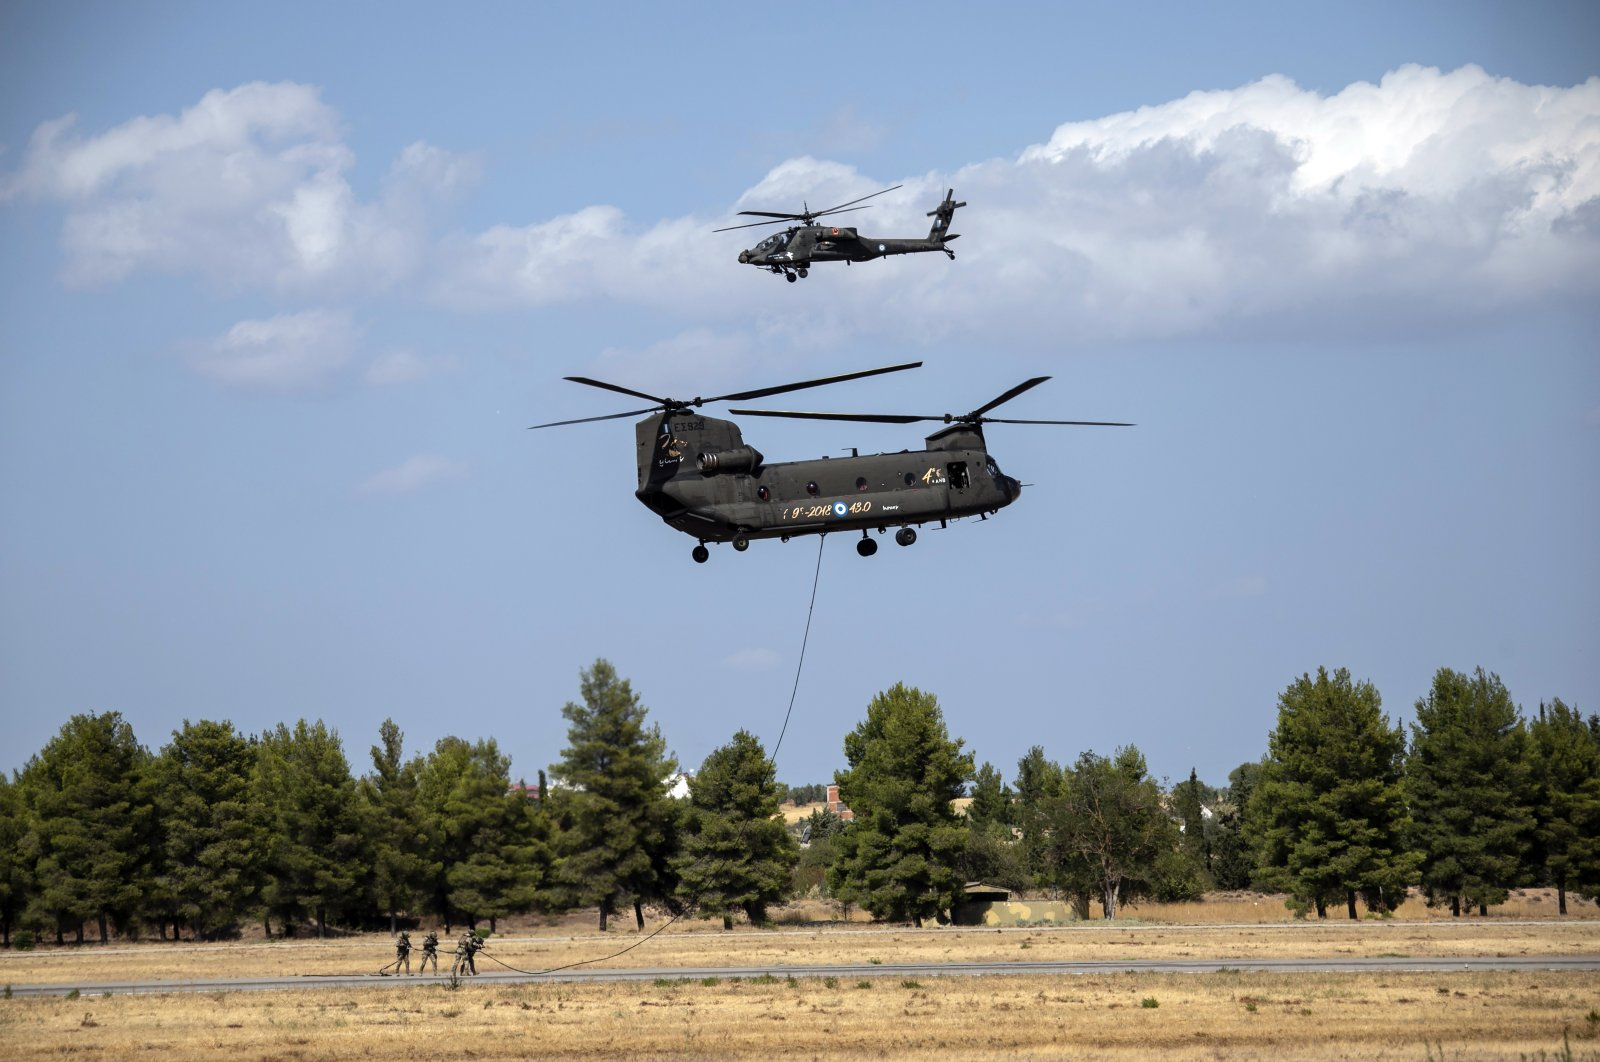 Greek military special forces perform with a CH-47 and a Kiowa helicopters during an airshow at Tanagra air base, north of Athens, Greece, Sept. 4, 2021. (AP Photo)